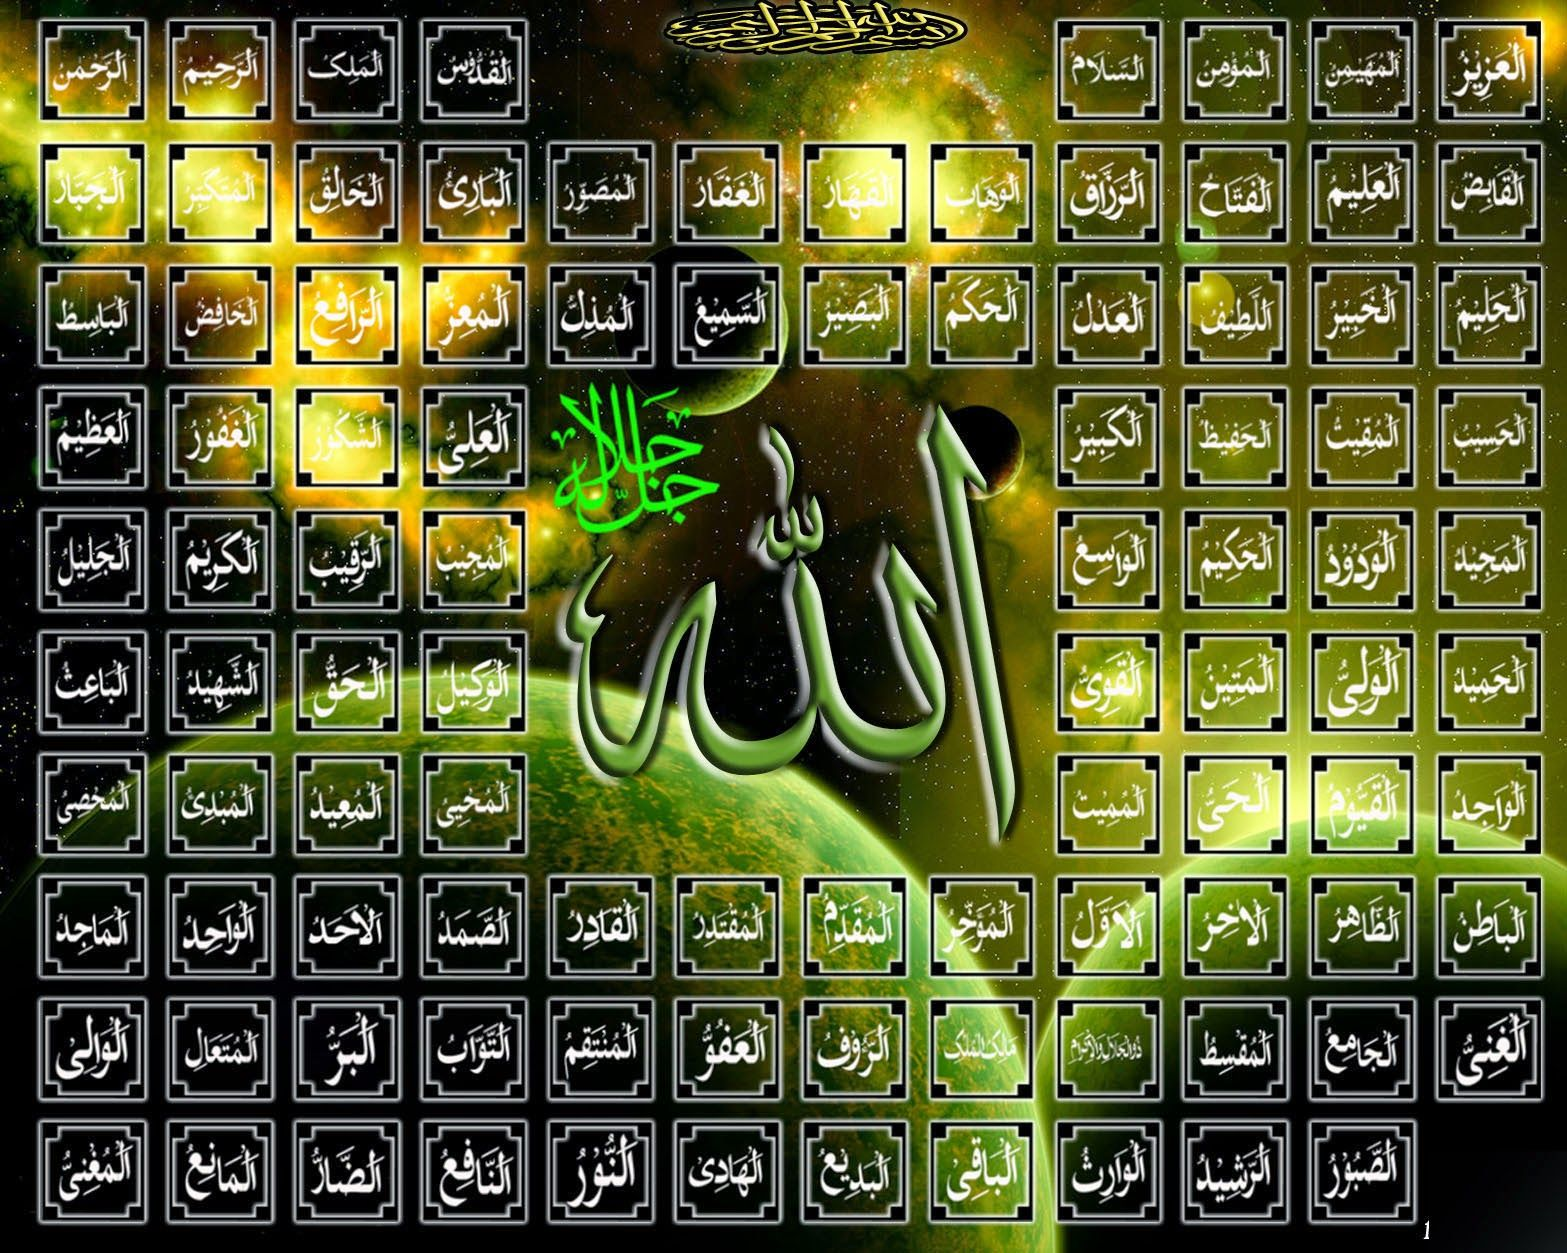 99 names of AlMighty Allah